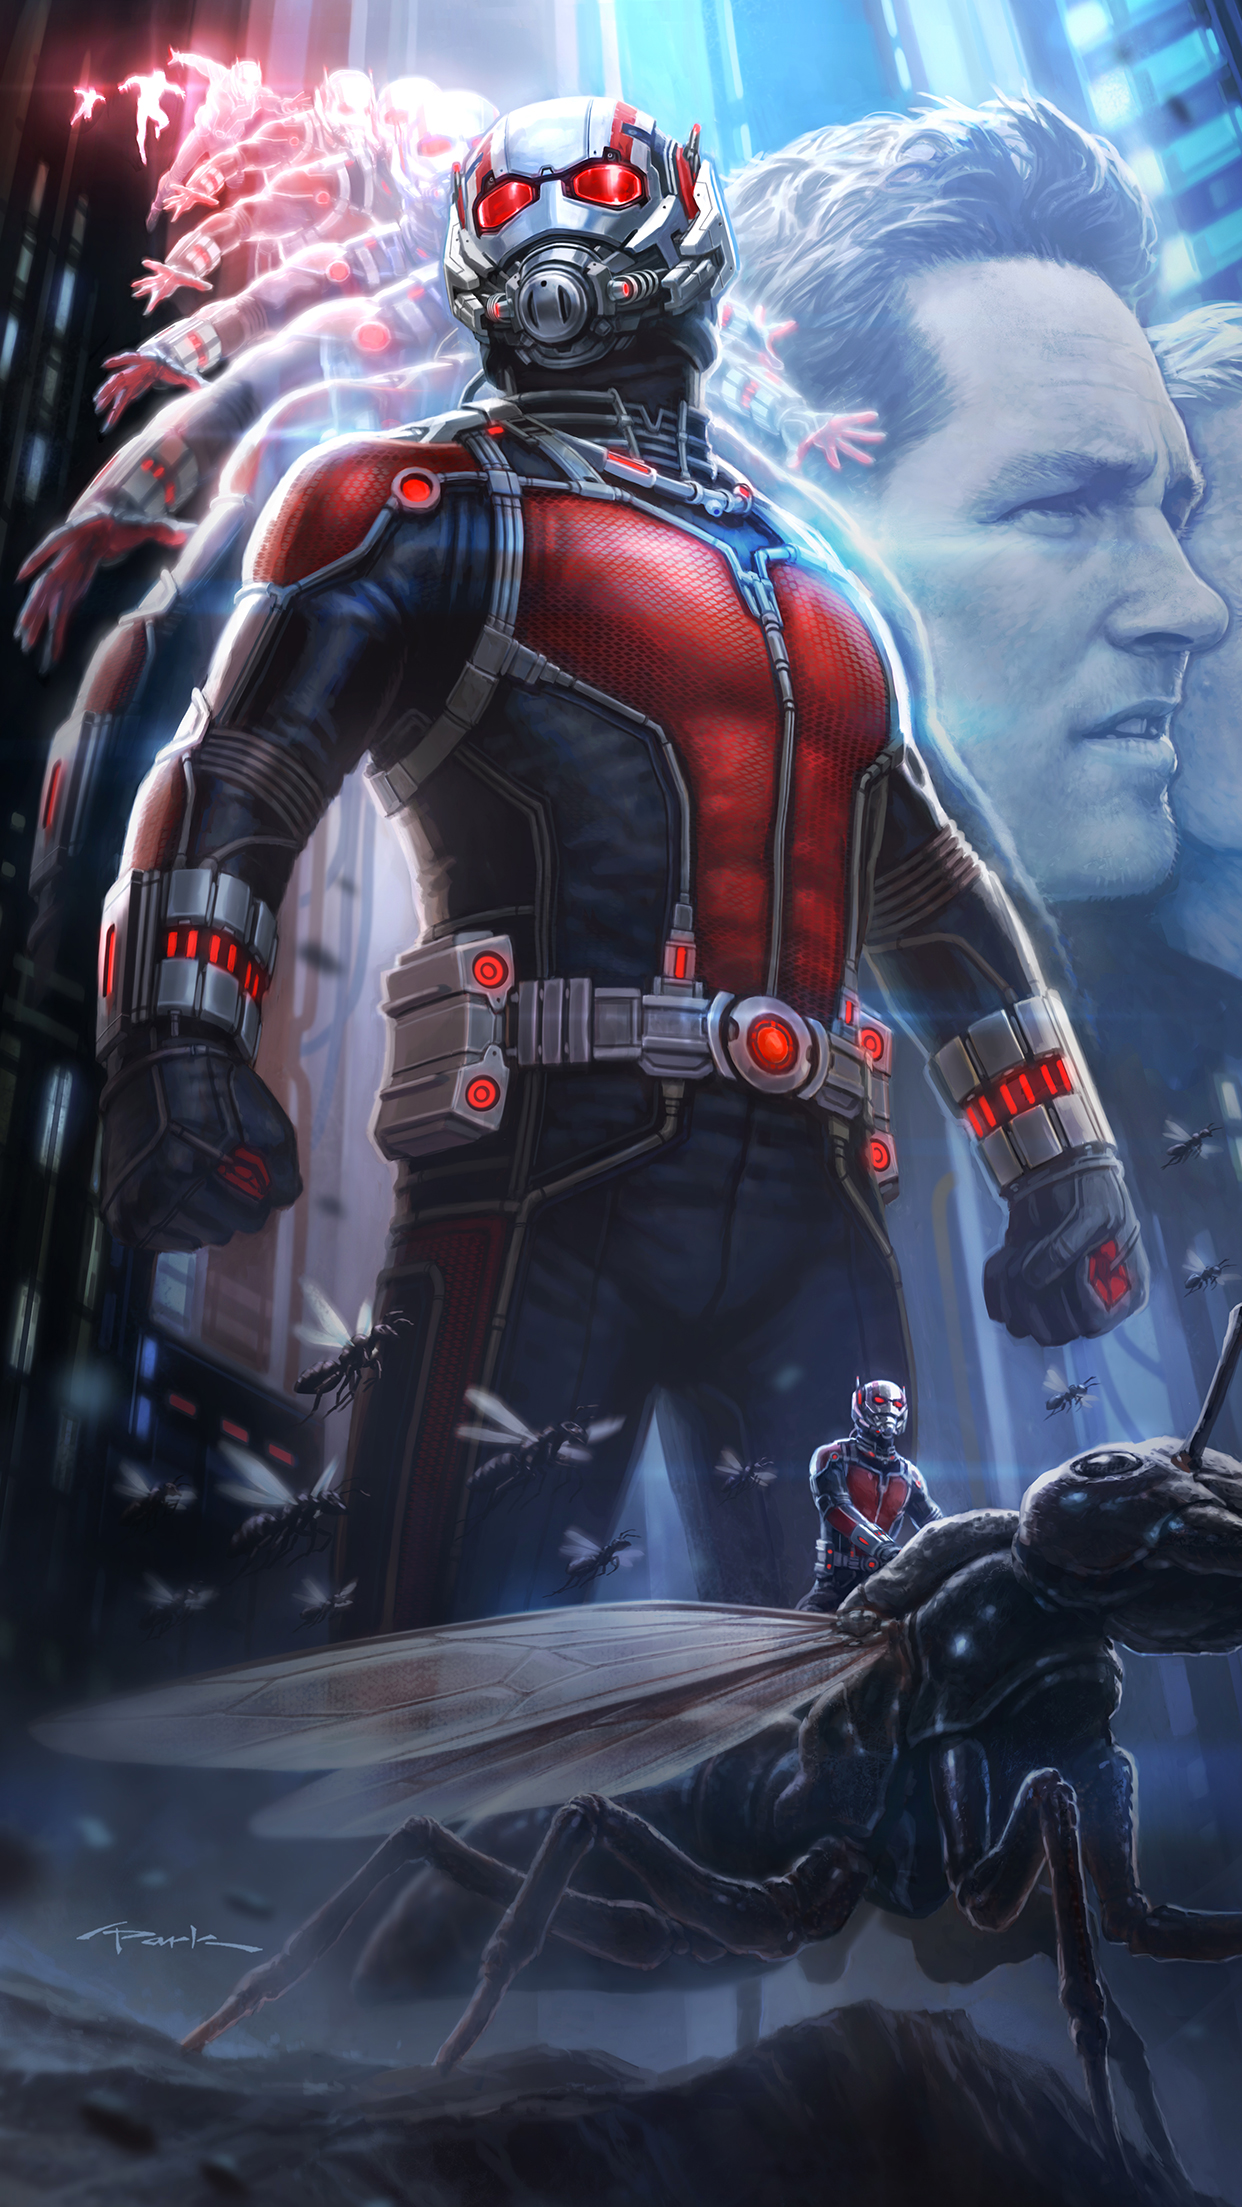 Ant Man Poster iPhone 3Wallpapers Parallax Les 3 Wallpapers iPhone du jour (18/07/2015)